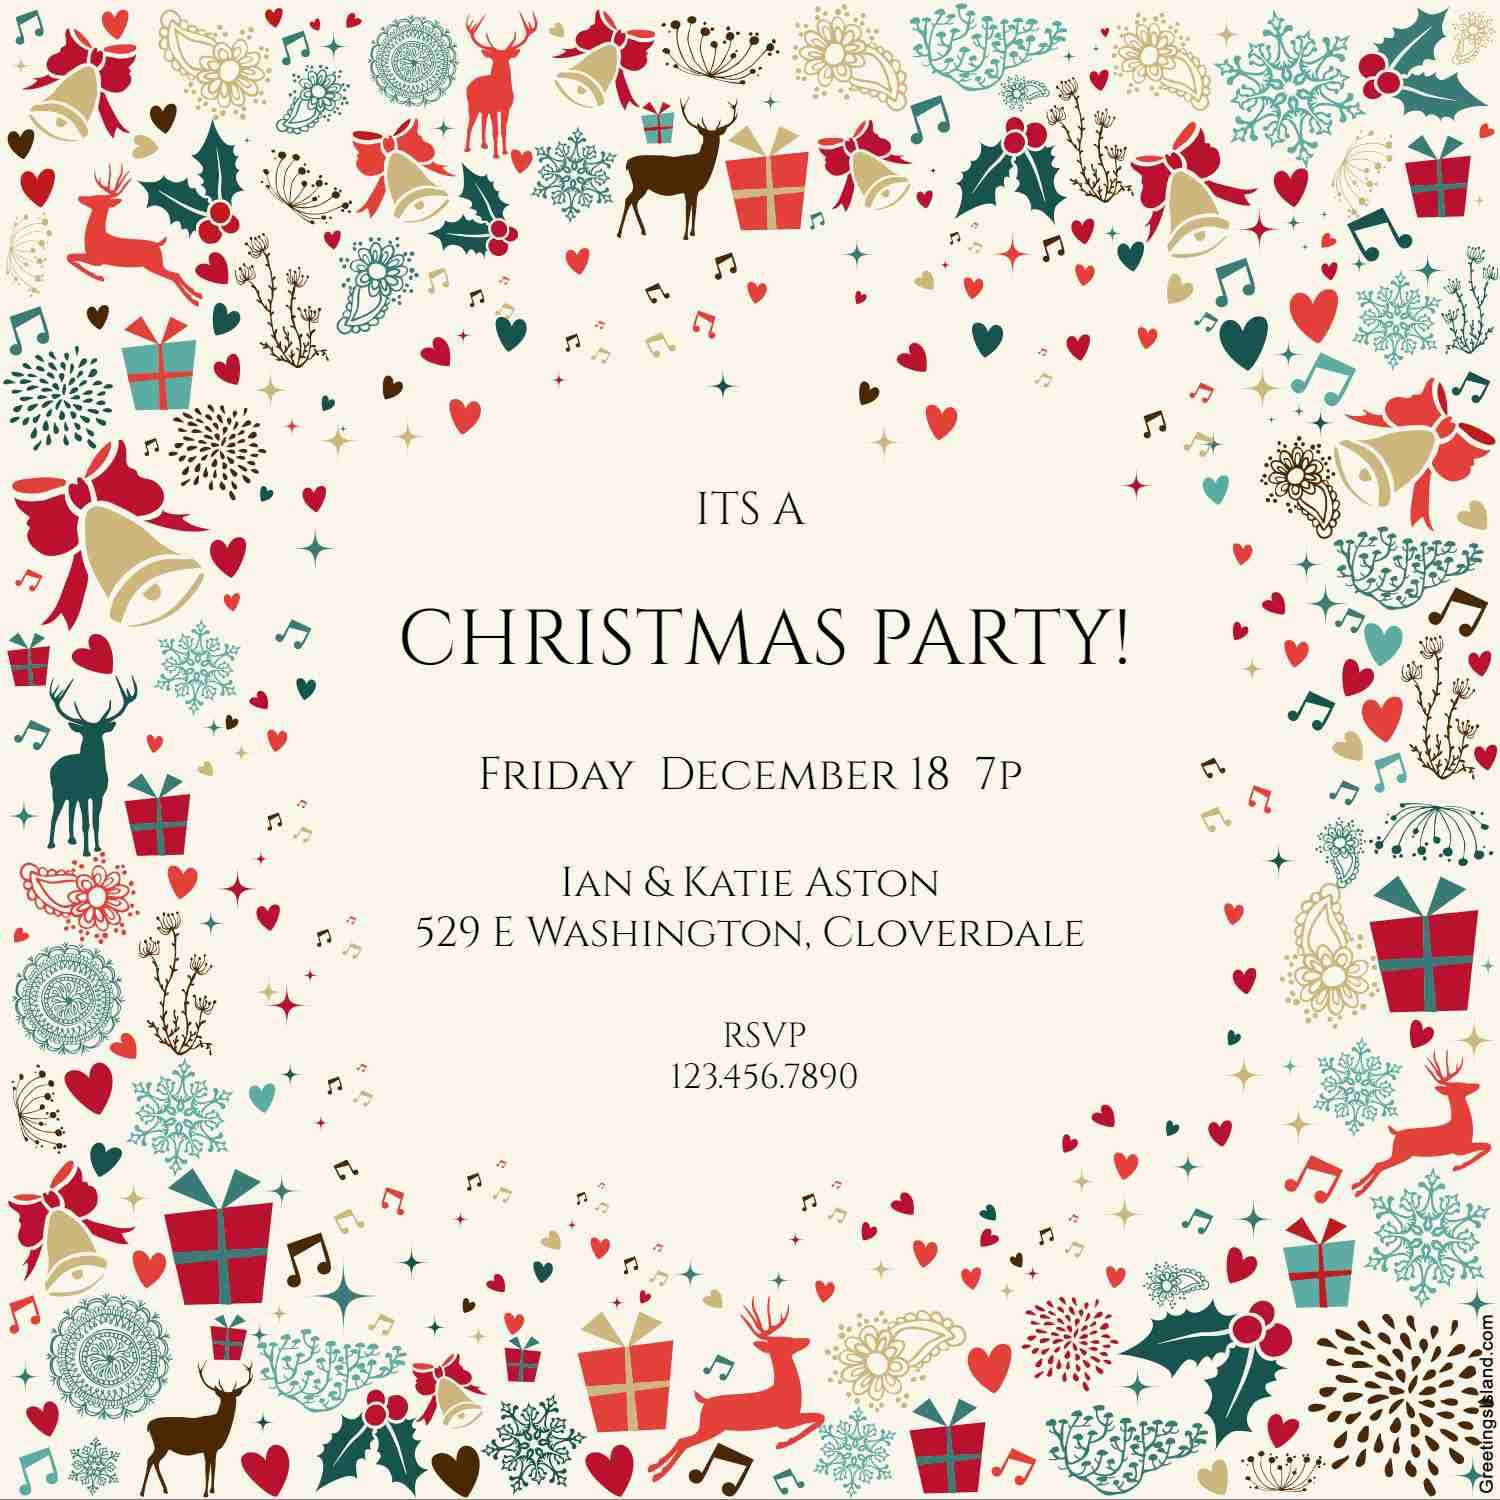 chrstimas party invite 595d1b9a3df78c4eb671d250